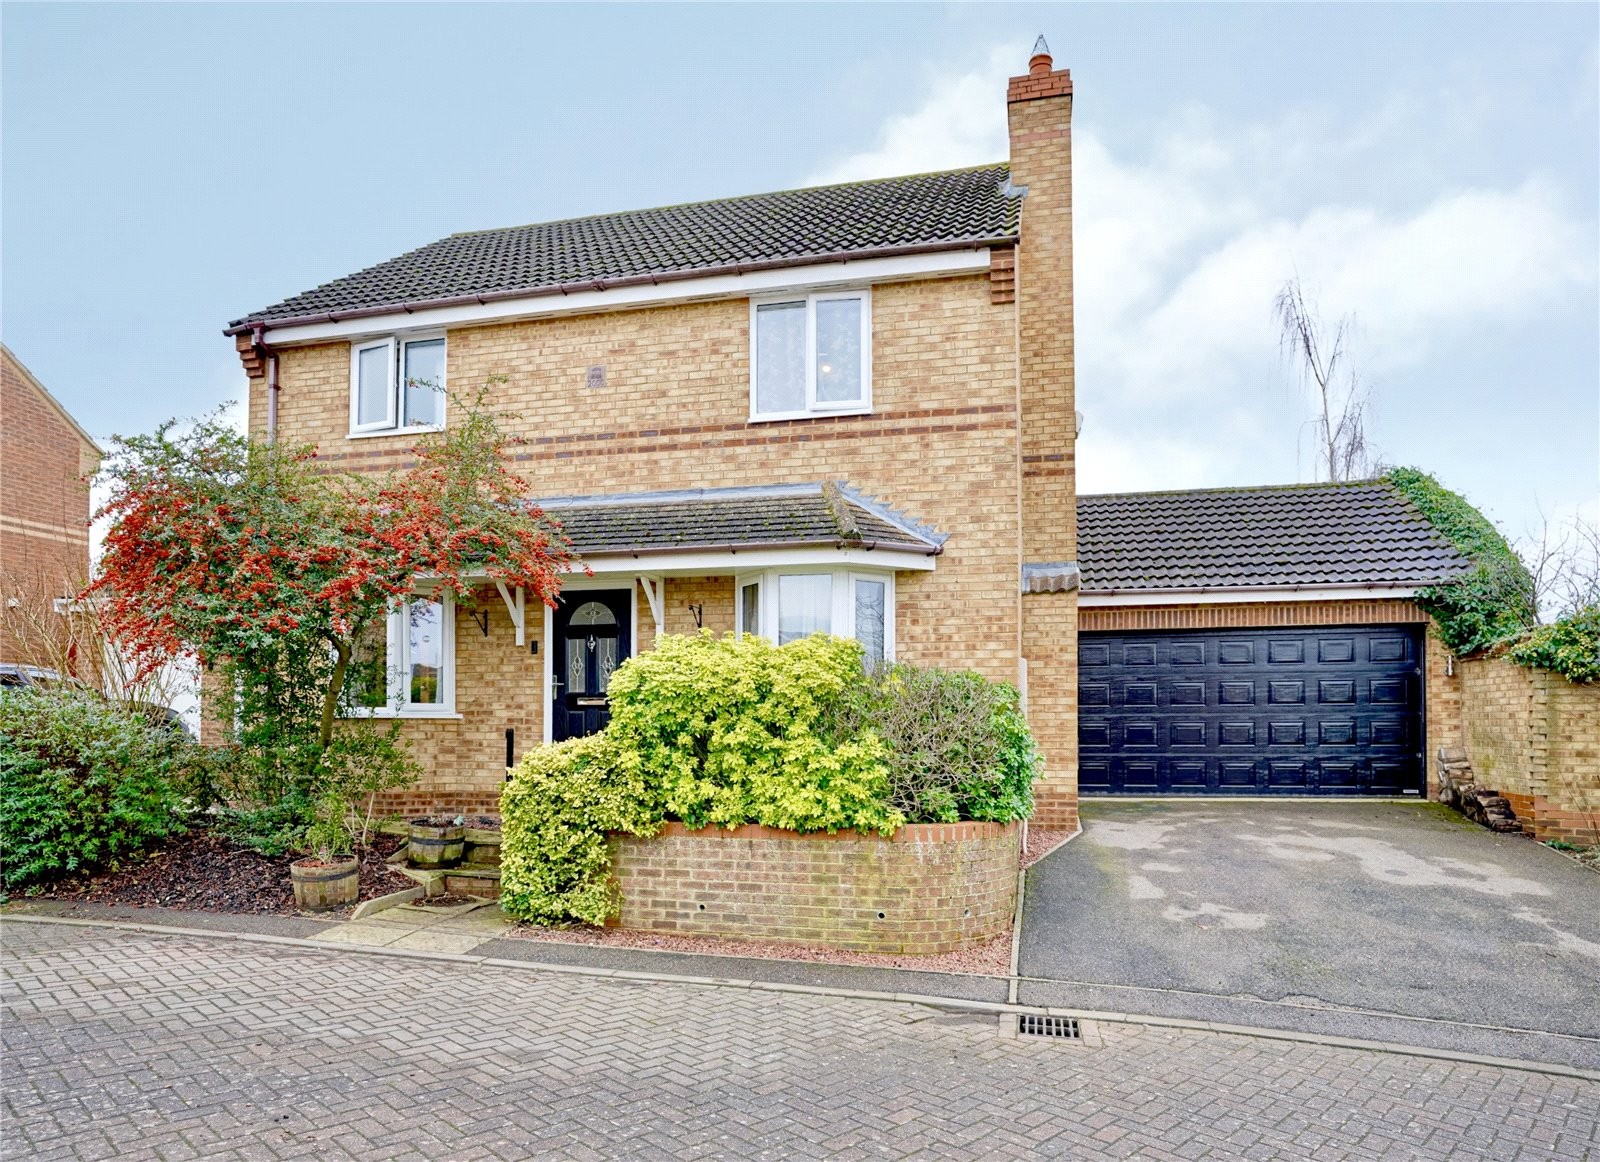 4 bed house for sale in Papworth Everard, CB23 3GW, CB23